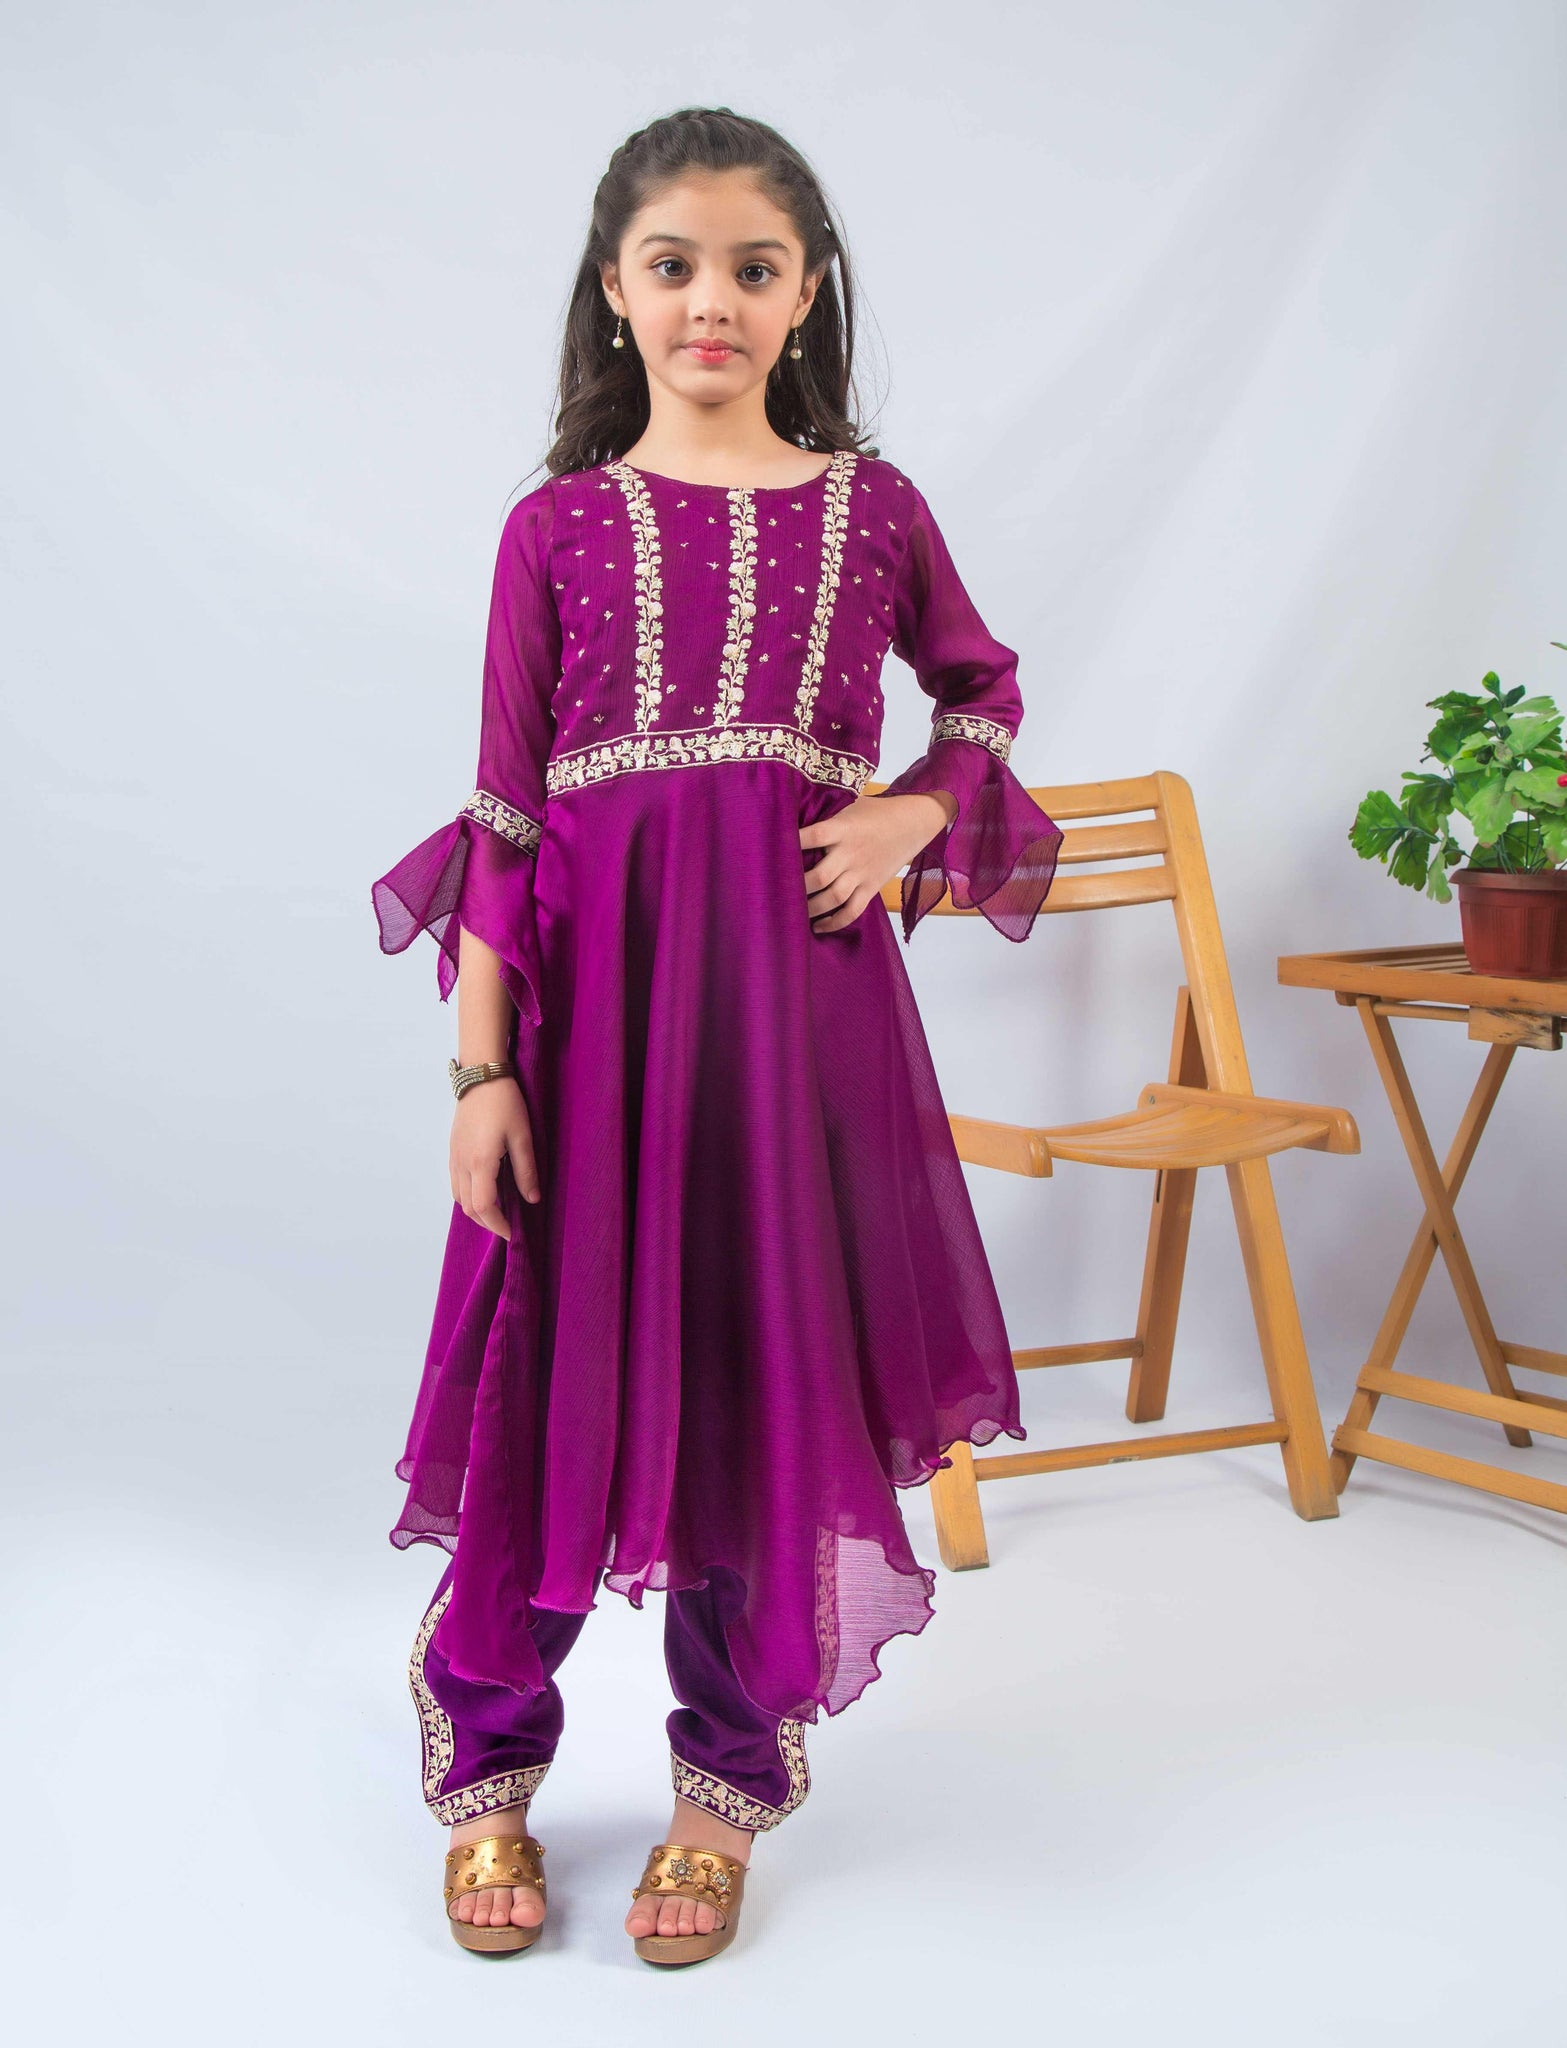 Purple Adorn (purple chiffon dress) - Modest Clothing